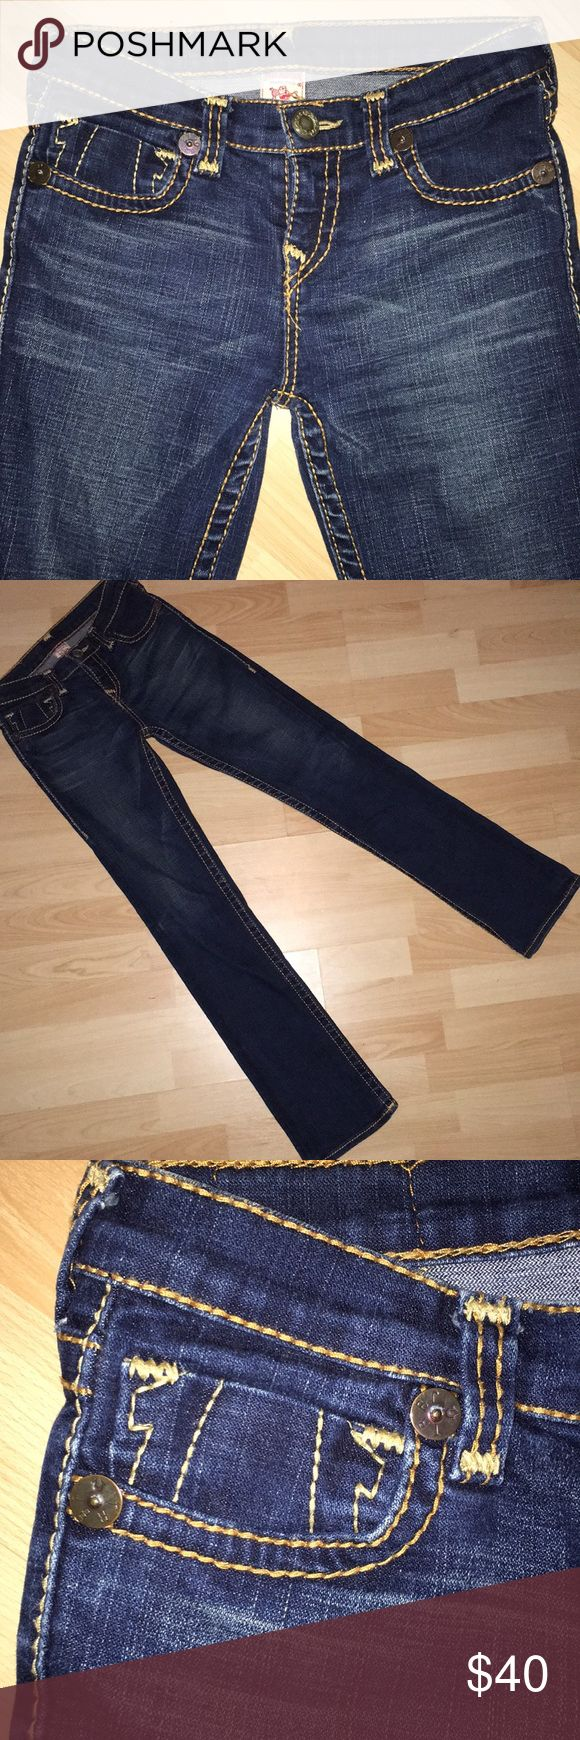 True religion jeans True religion jeans, dark wash excellent condition! size 14 girls. True Religion Bottoms Jeans